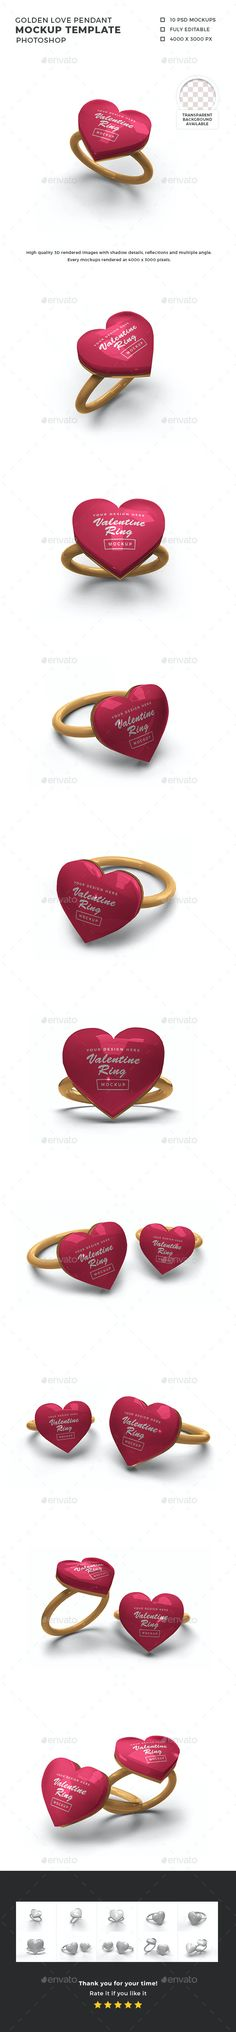 Valentine Love Ring Mockup Template by DendySign | GraphicRiver